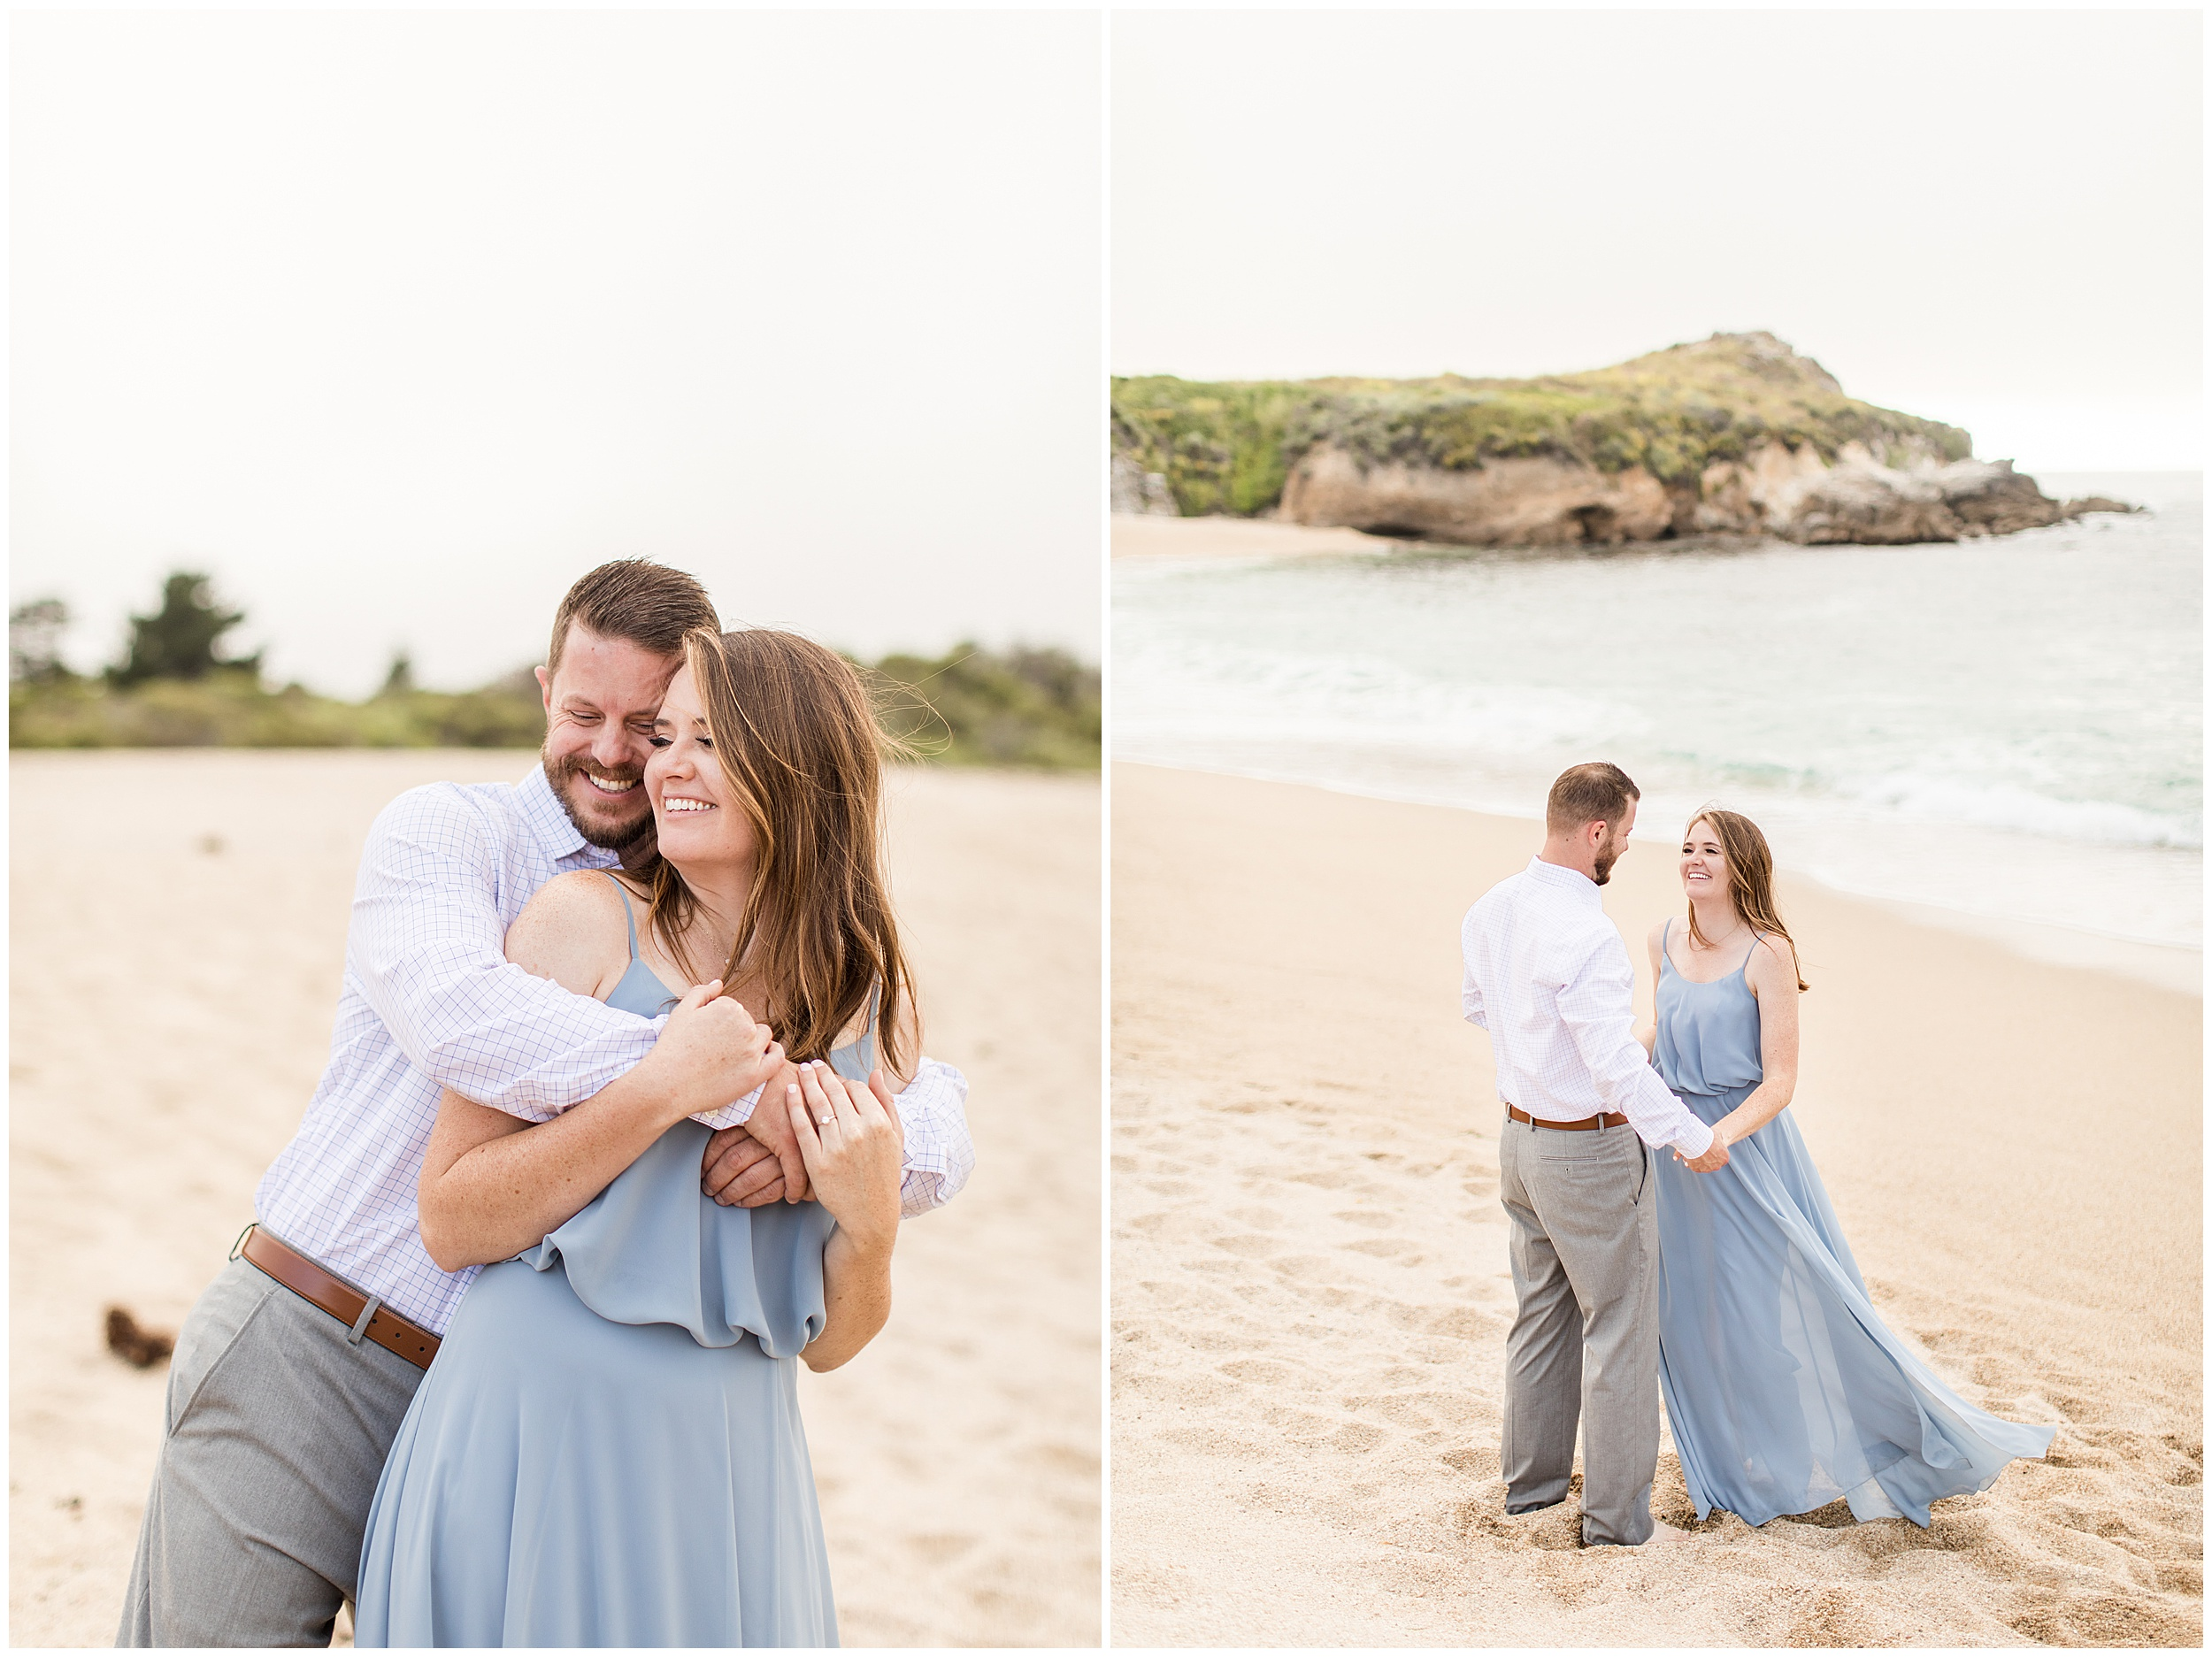 2019 carmel by the sea surprise proposal engagement session wedding photographer angela sue photography_0025.jpg